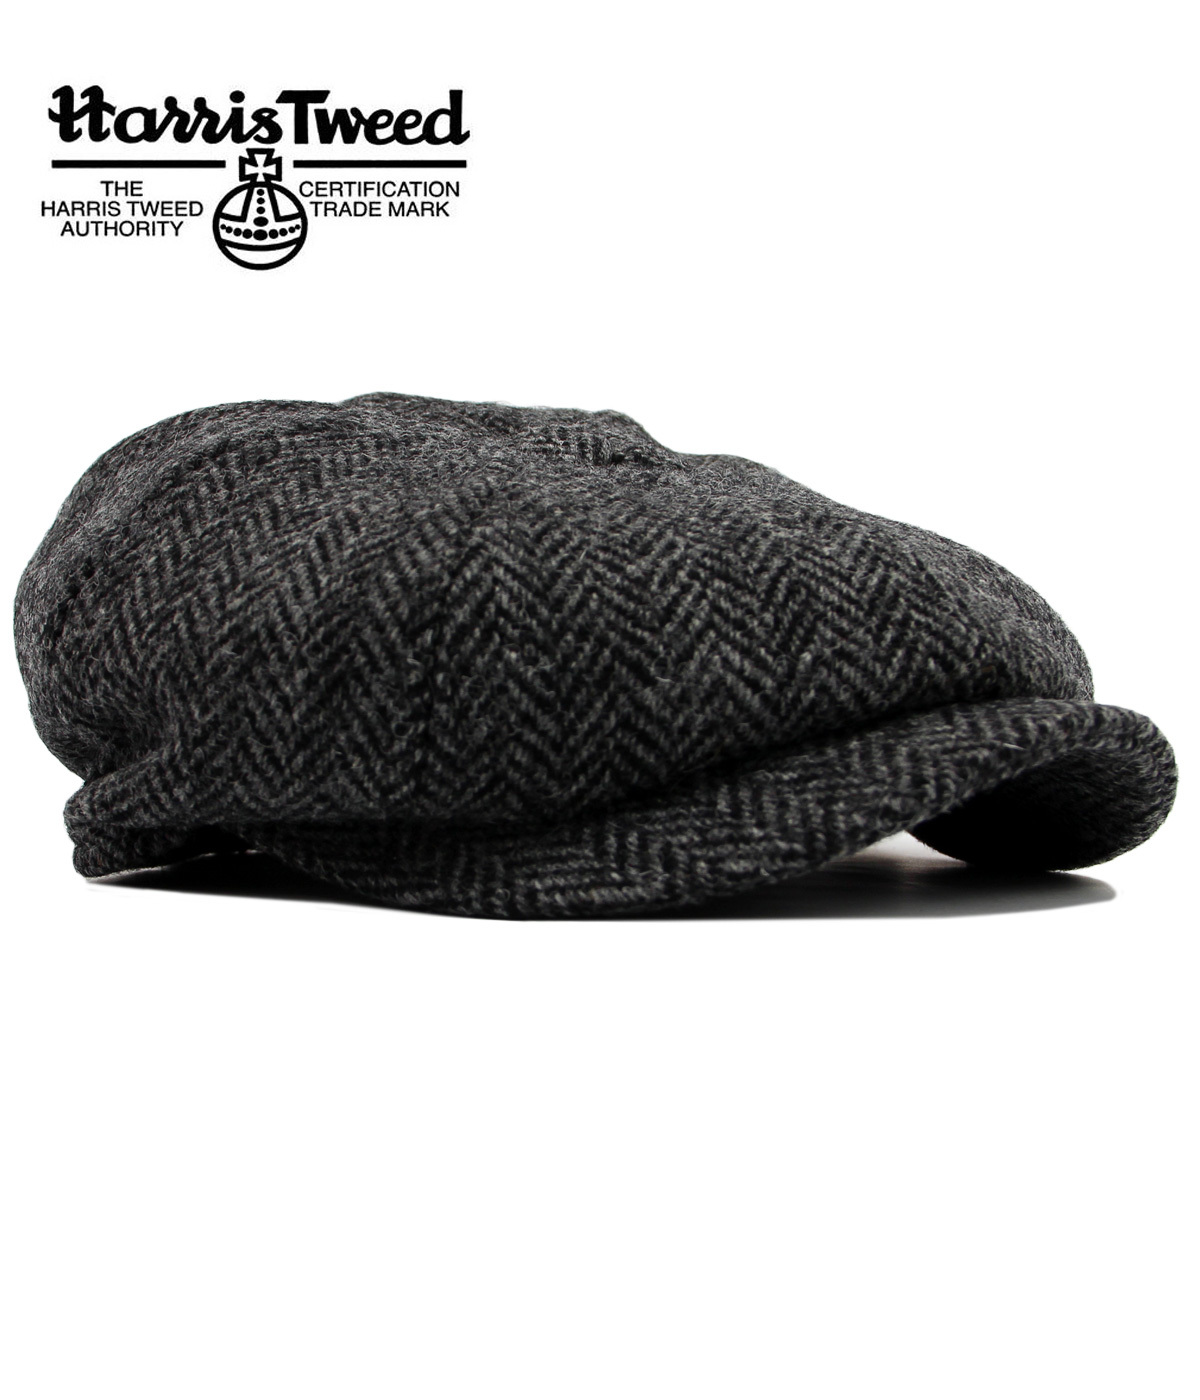 Carloway Harris Tweed FAILSWORTH Retro Mod 8 Panel Gatsby Cap 40f016a859c